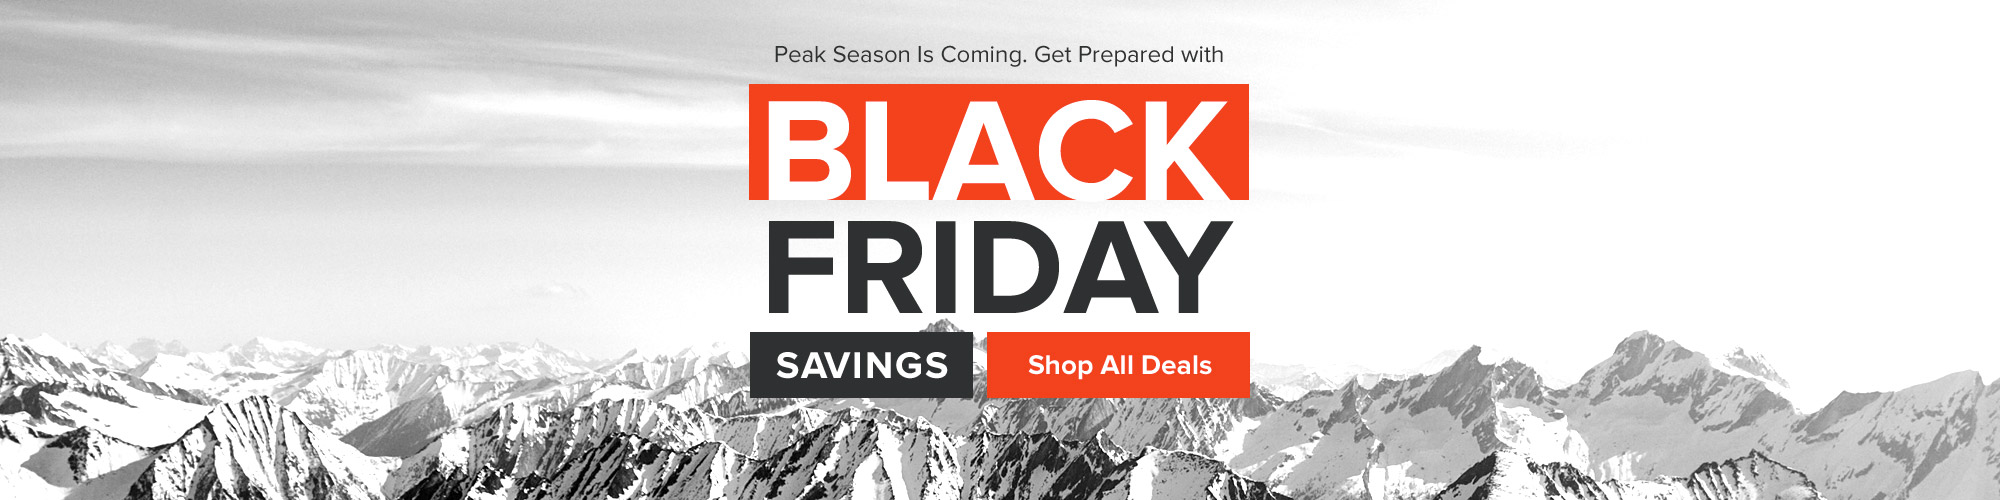 Black Friday Savings - Shop All Deals